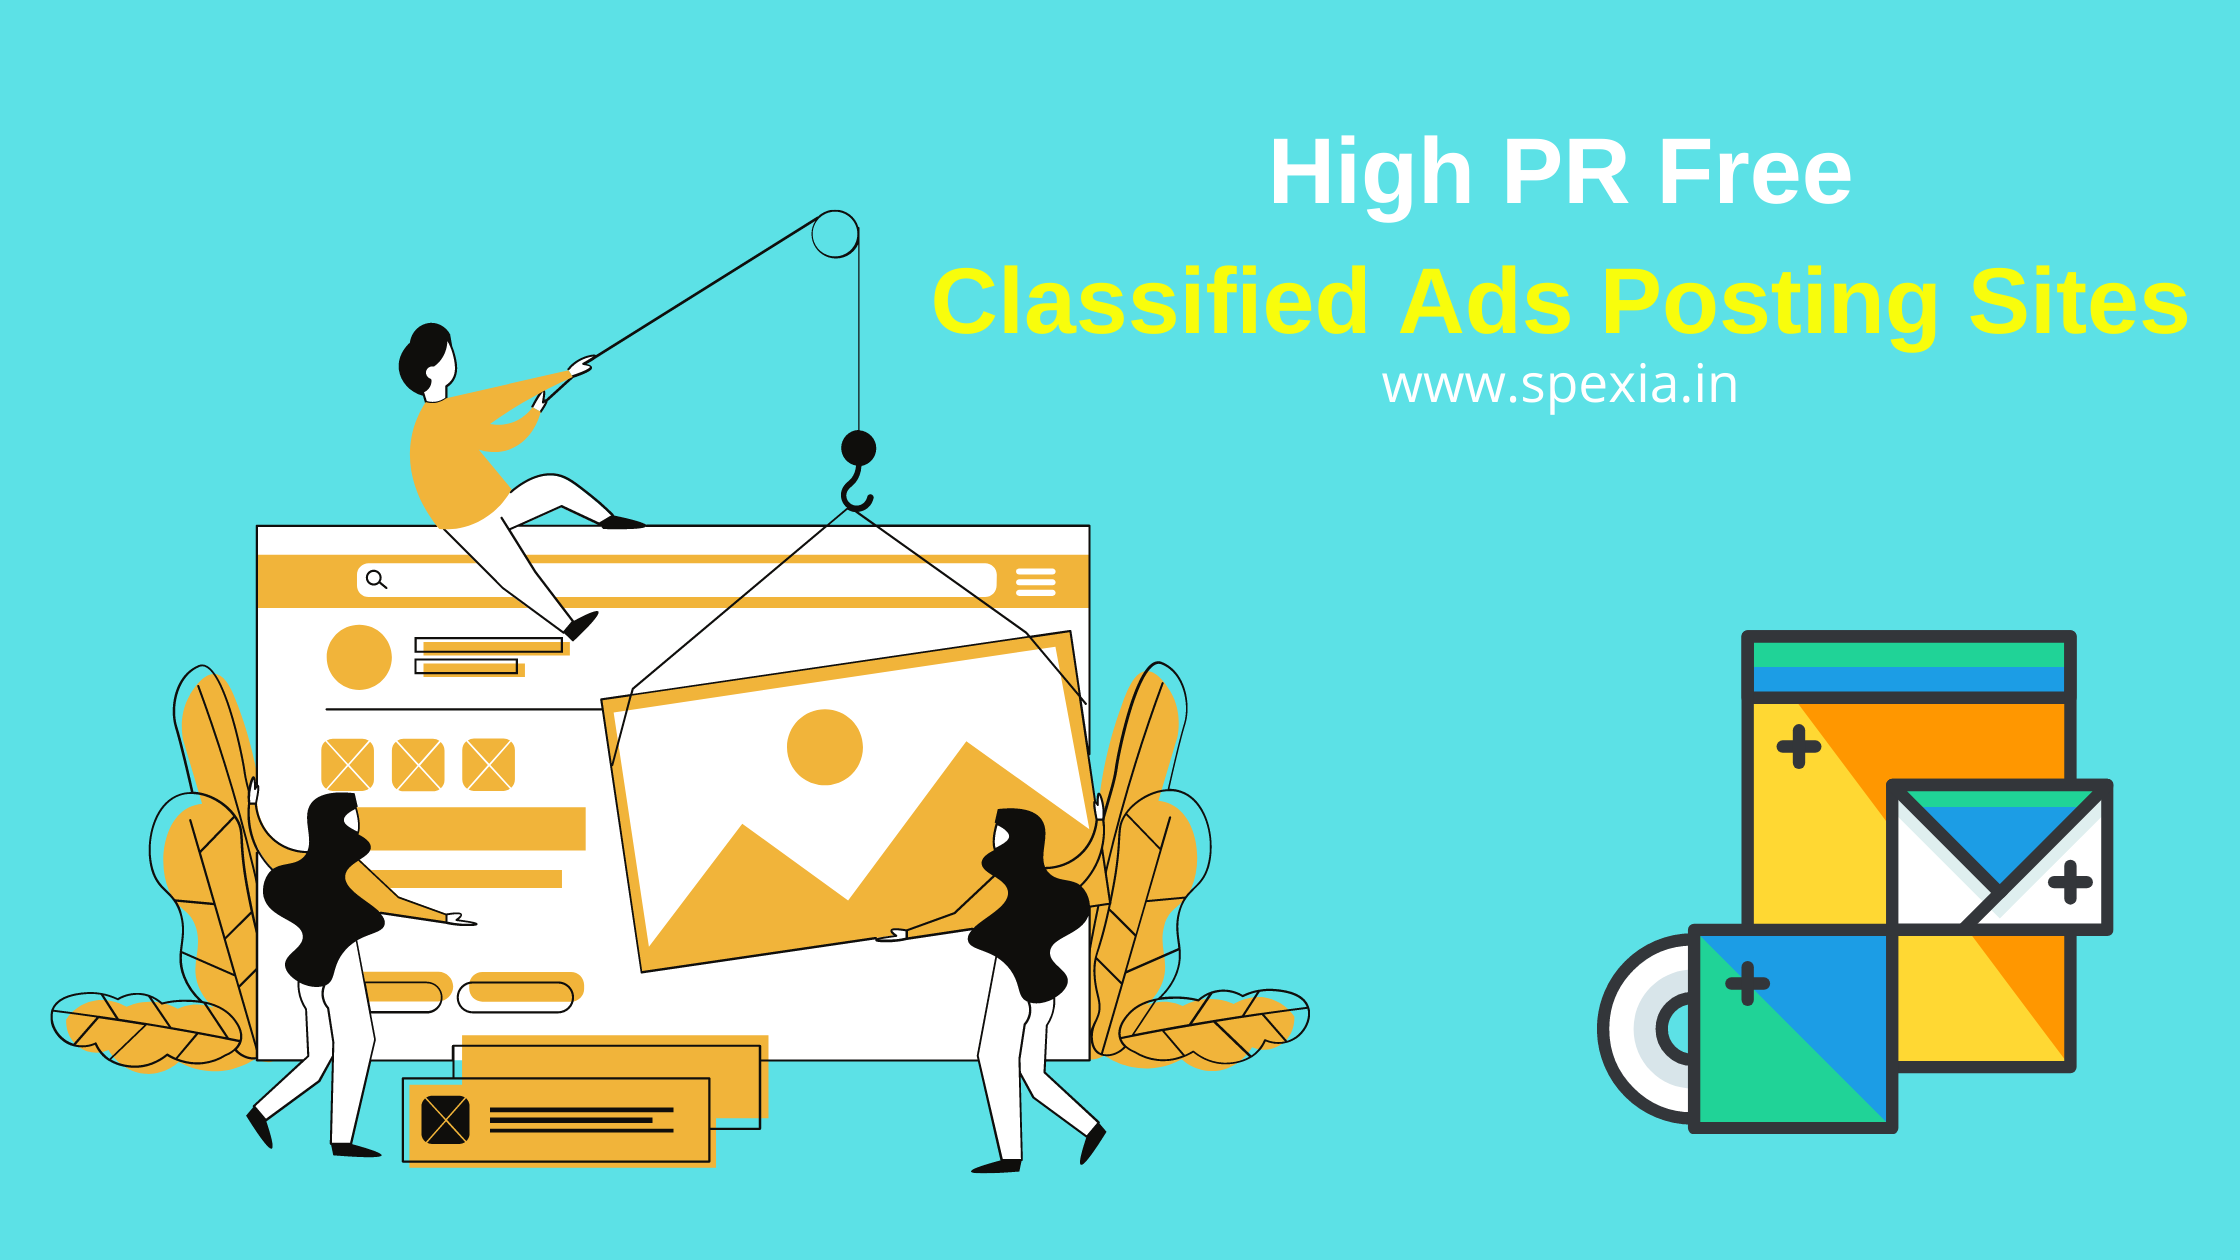 High PR Free Classified Ads Posting Sites